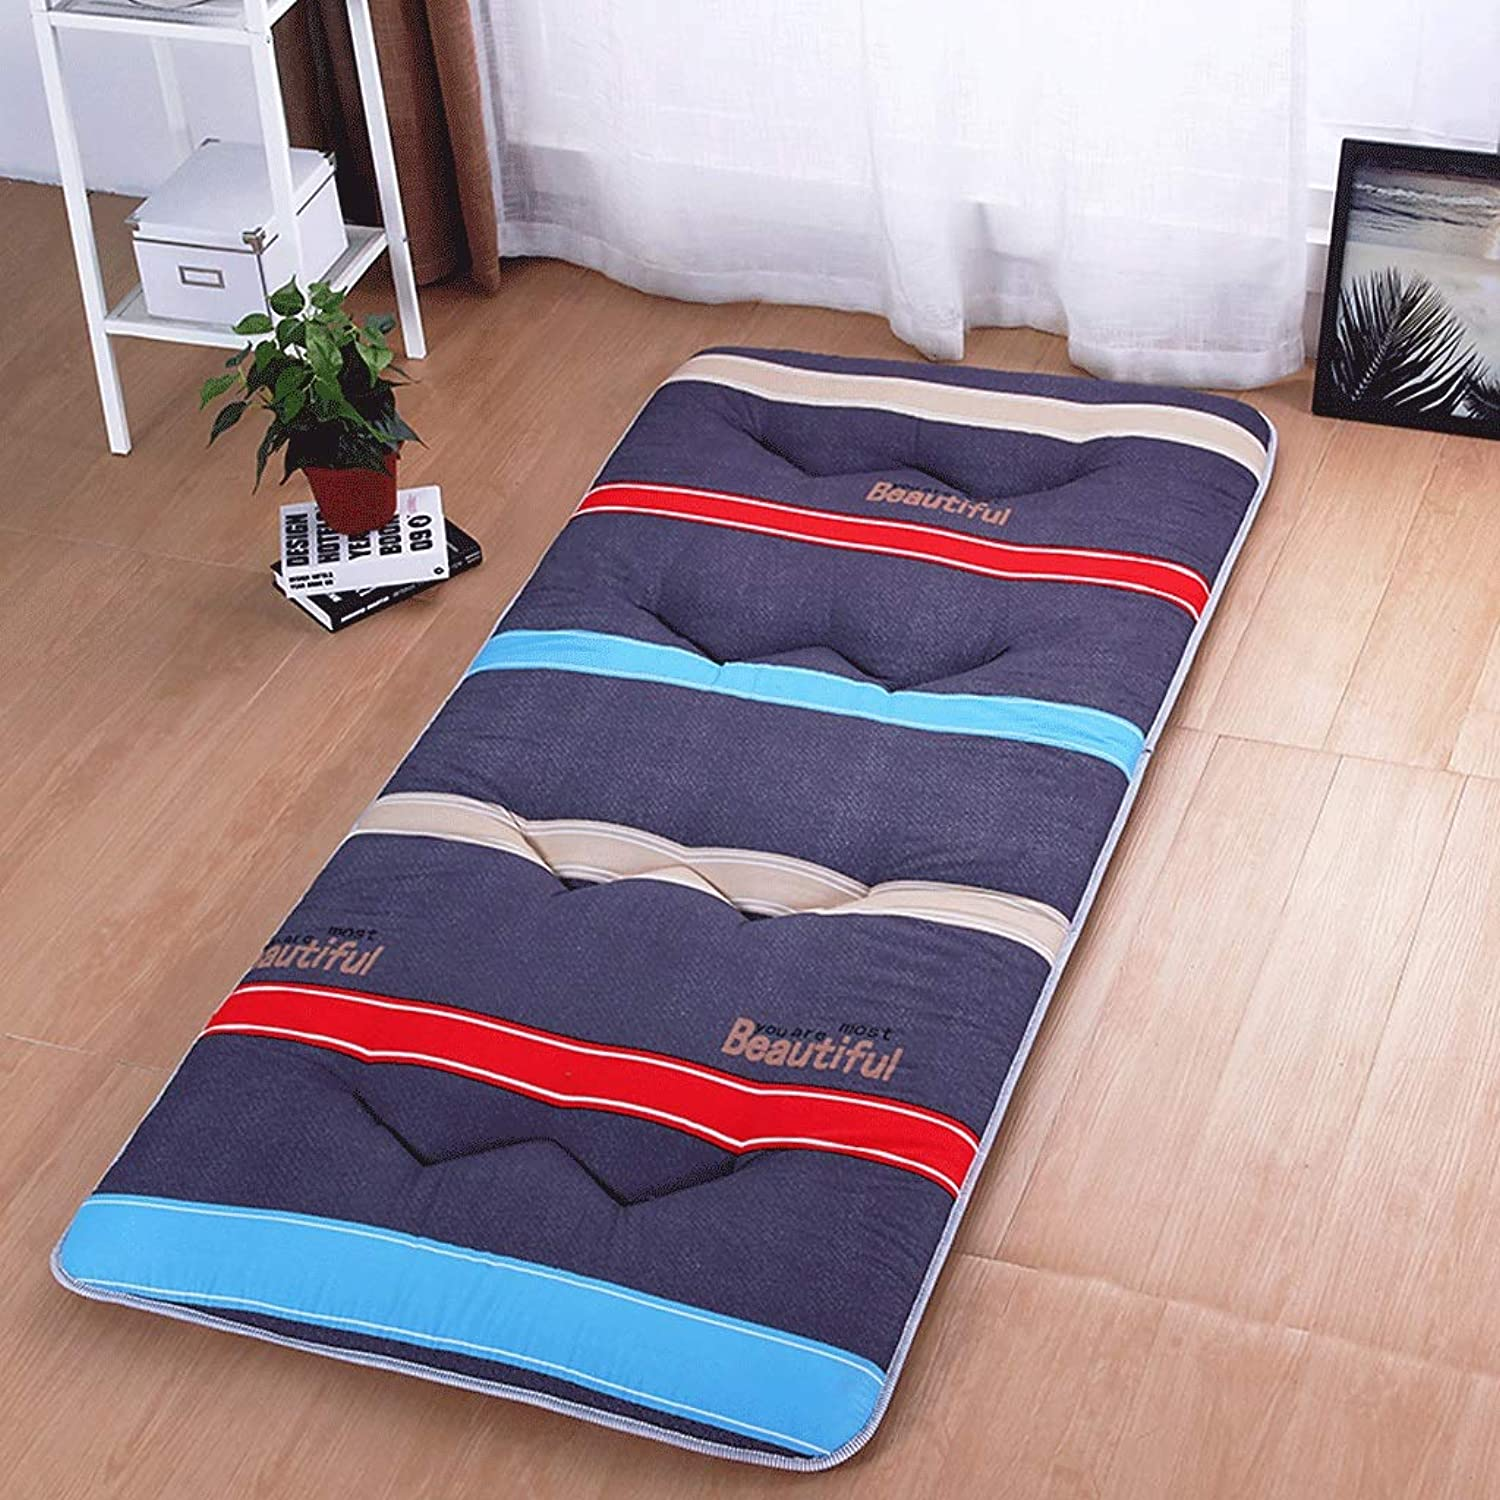 Thickened Dormitory Mattress Tatami Warm Hotel Home Foldable Mat (color   6, Size   120X200cm)